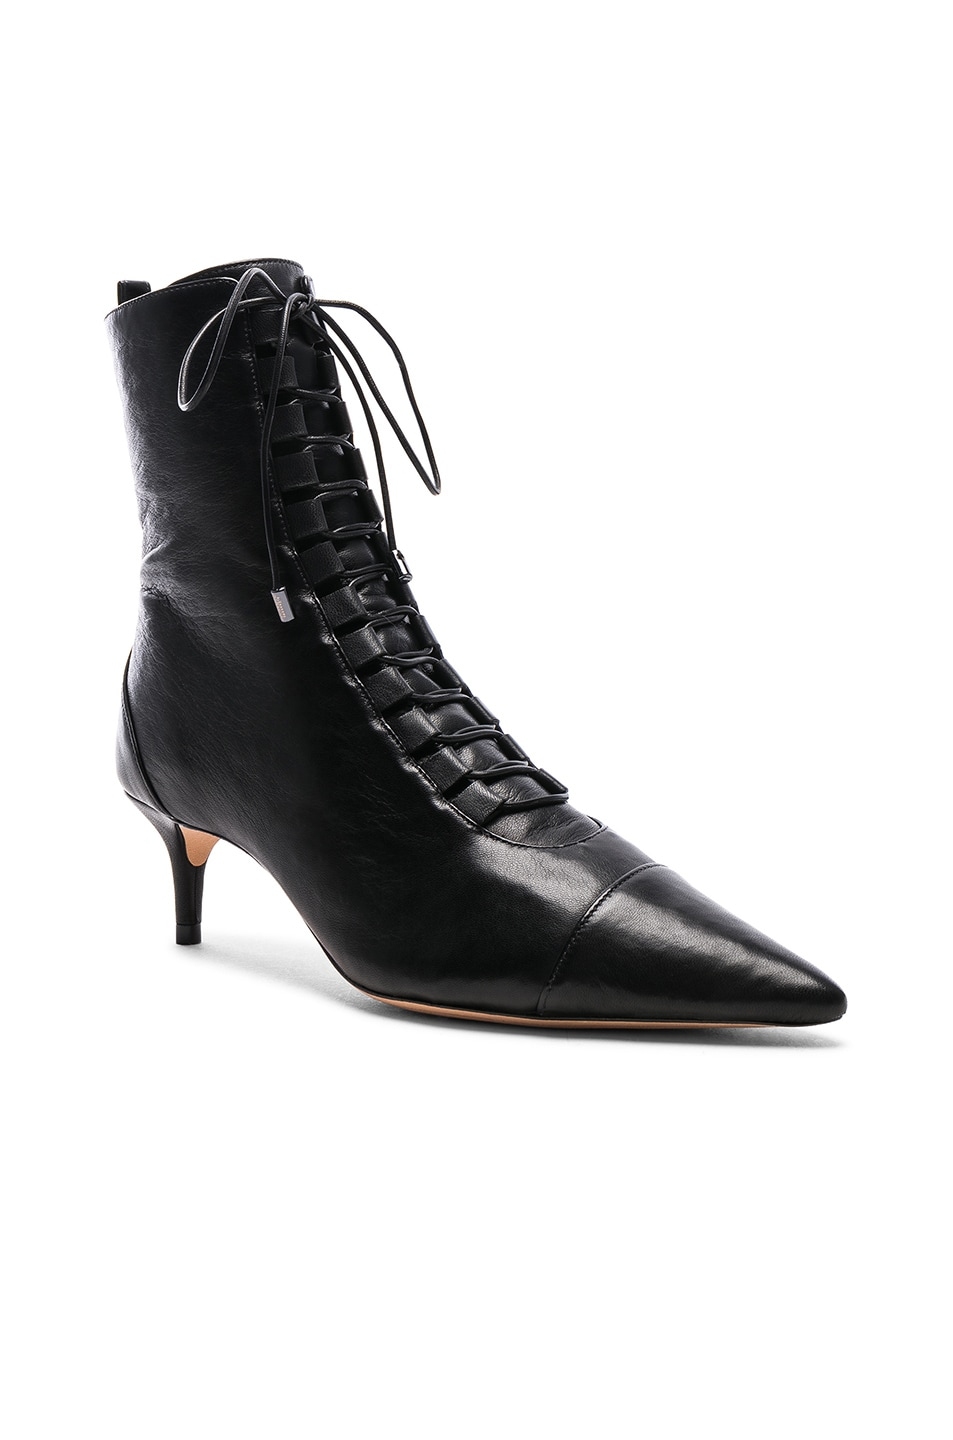 Image 2 of Alexandre Birman Leather Millen Lace Up Ankle Boots in Black